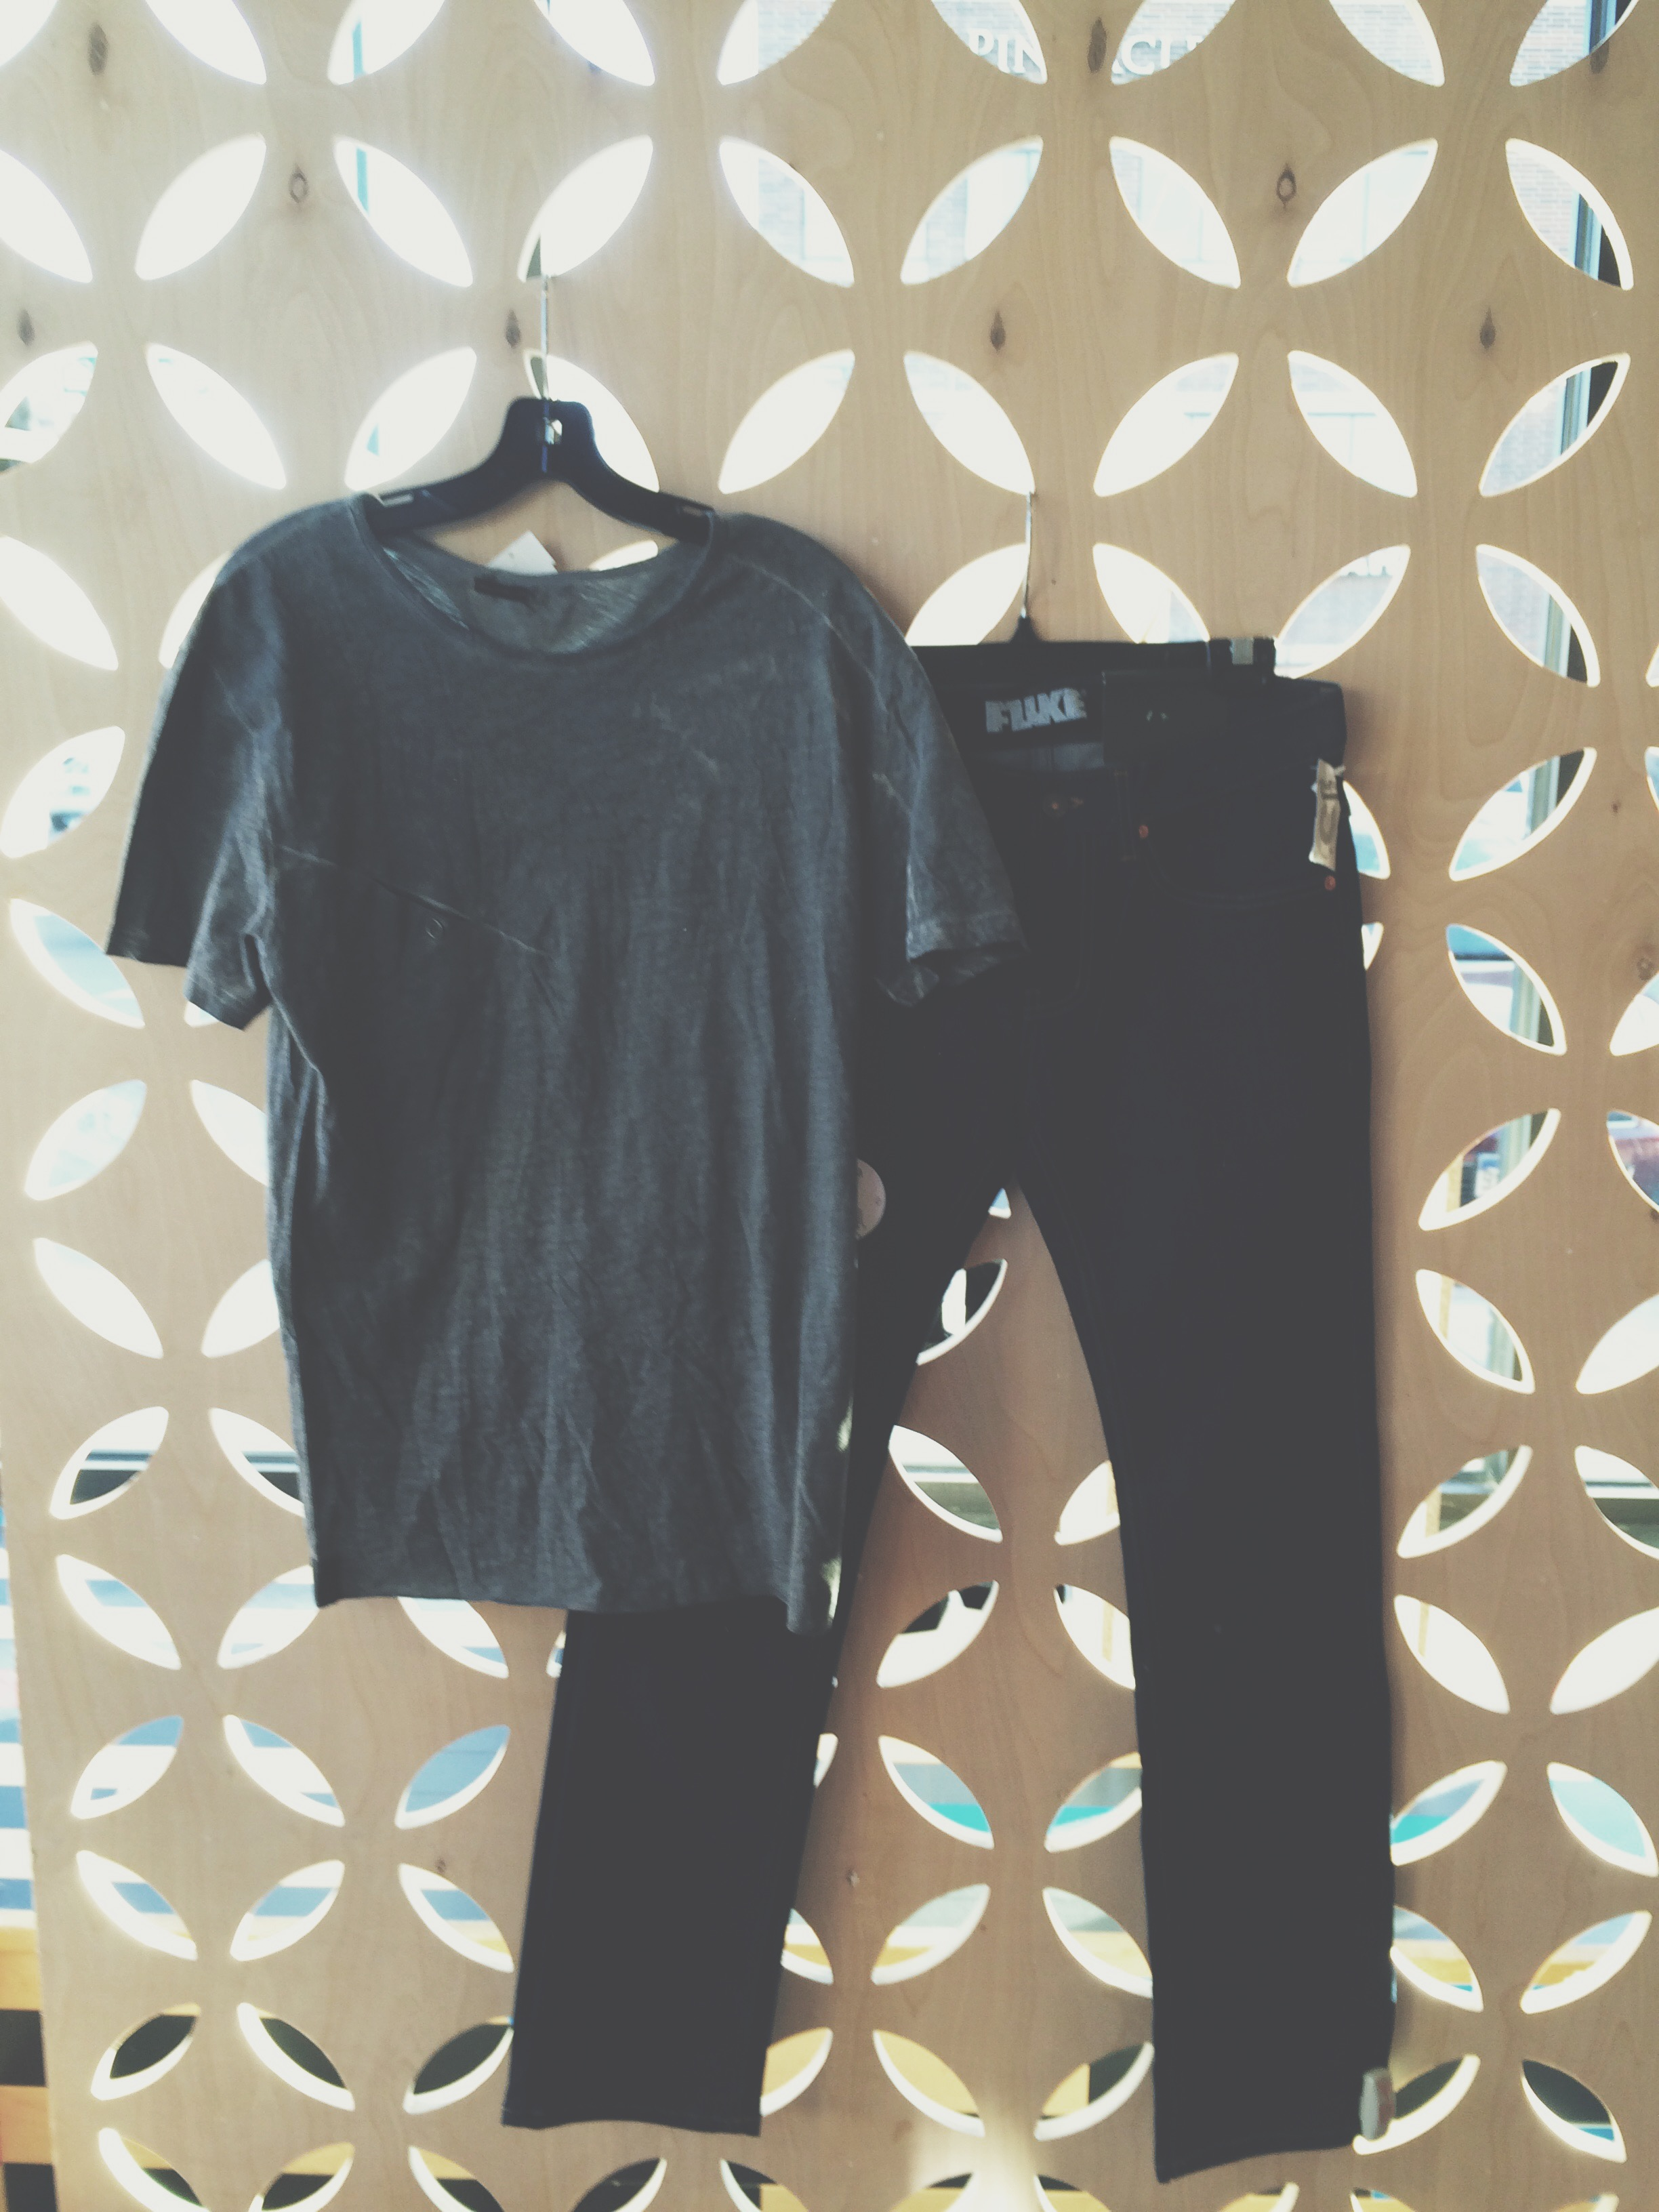 We always need good, gently worn, basic men's tee's. A good dark wash denim is most desirable on our floor, it doesn't have to be a skinny jean, we're also looking for a good straight leg.